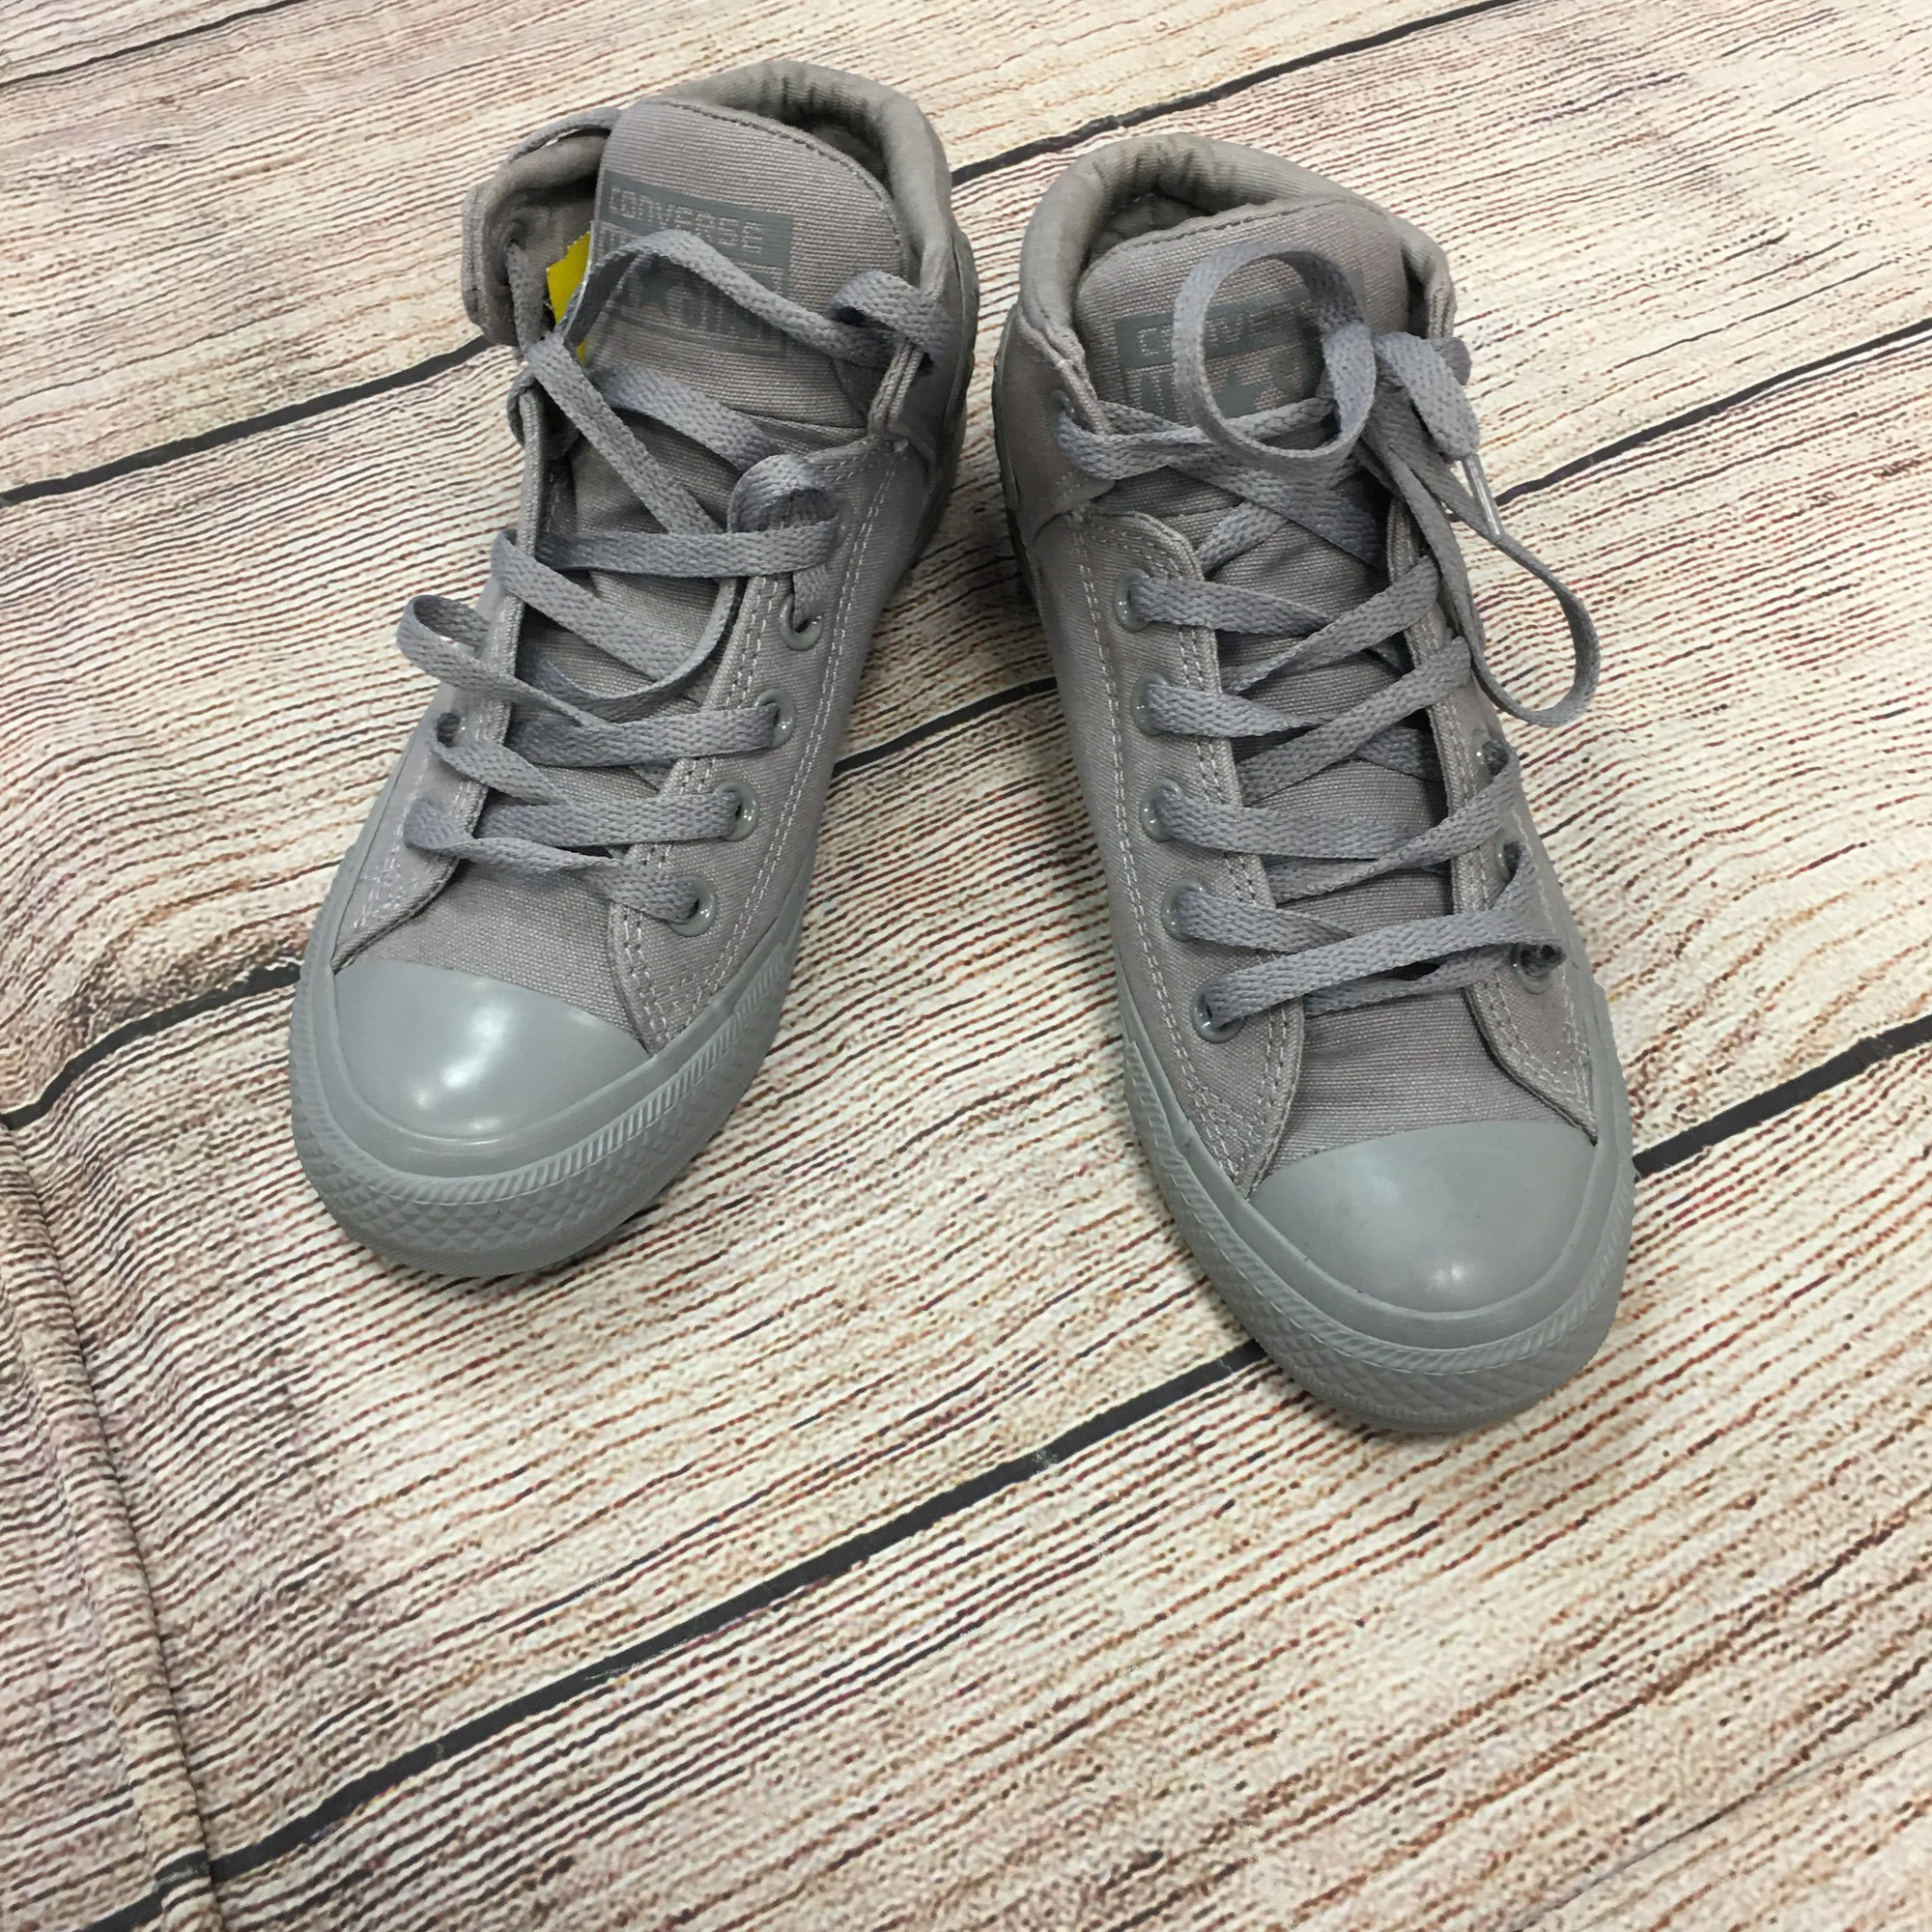 Converse High Tops Shoes, Grey, Size: 7